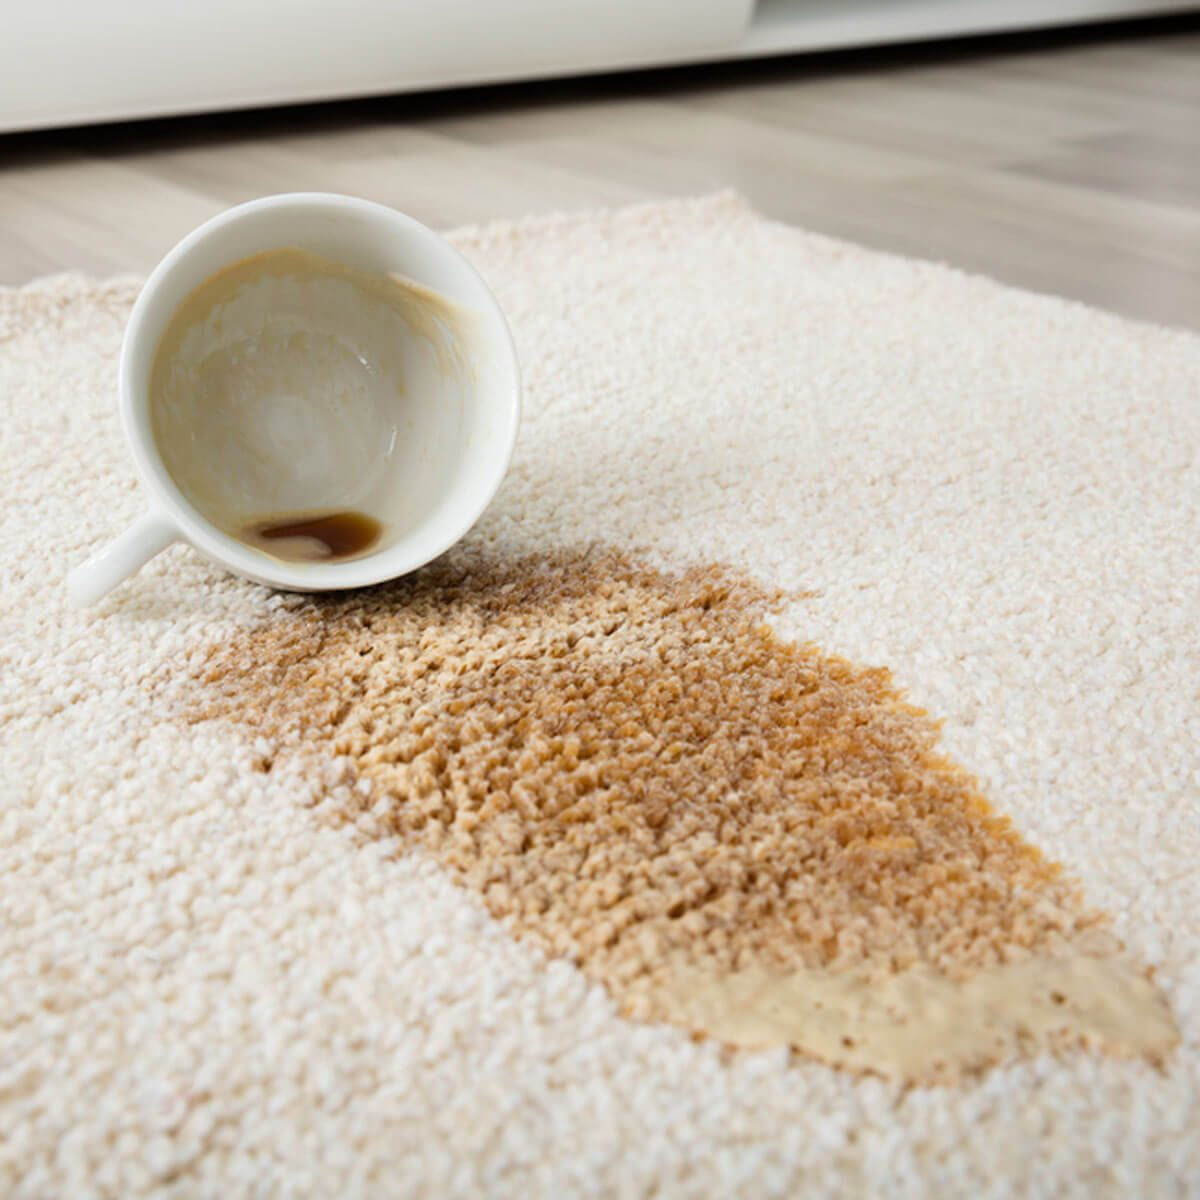 shutterstock_561916813 spilt coffee on carpet